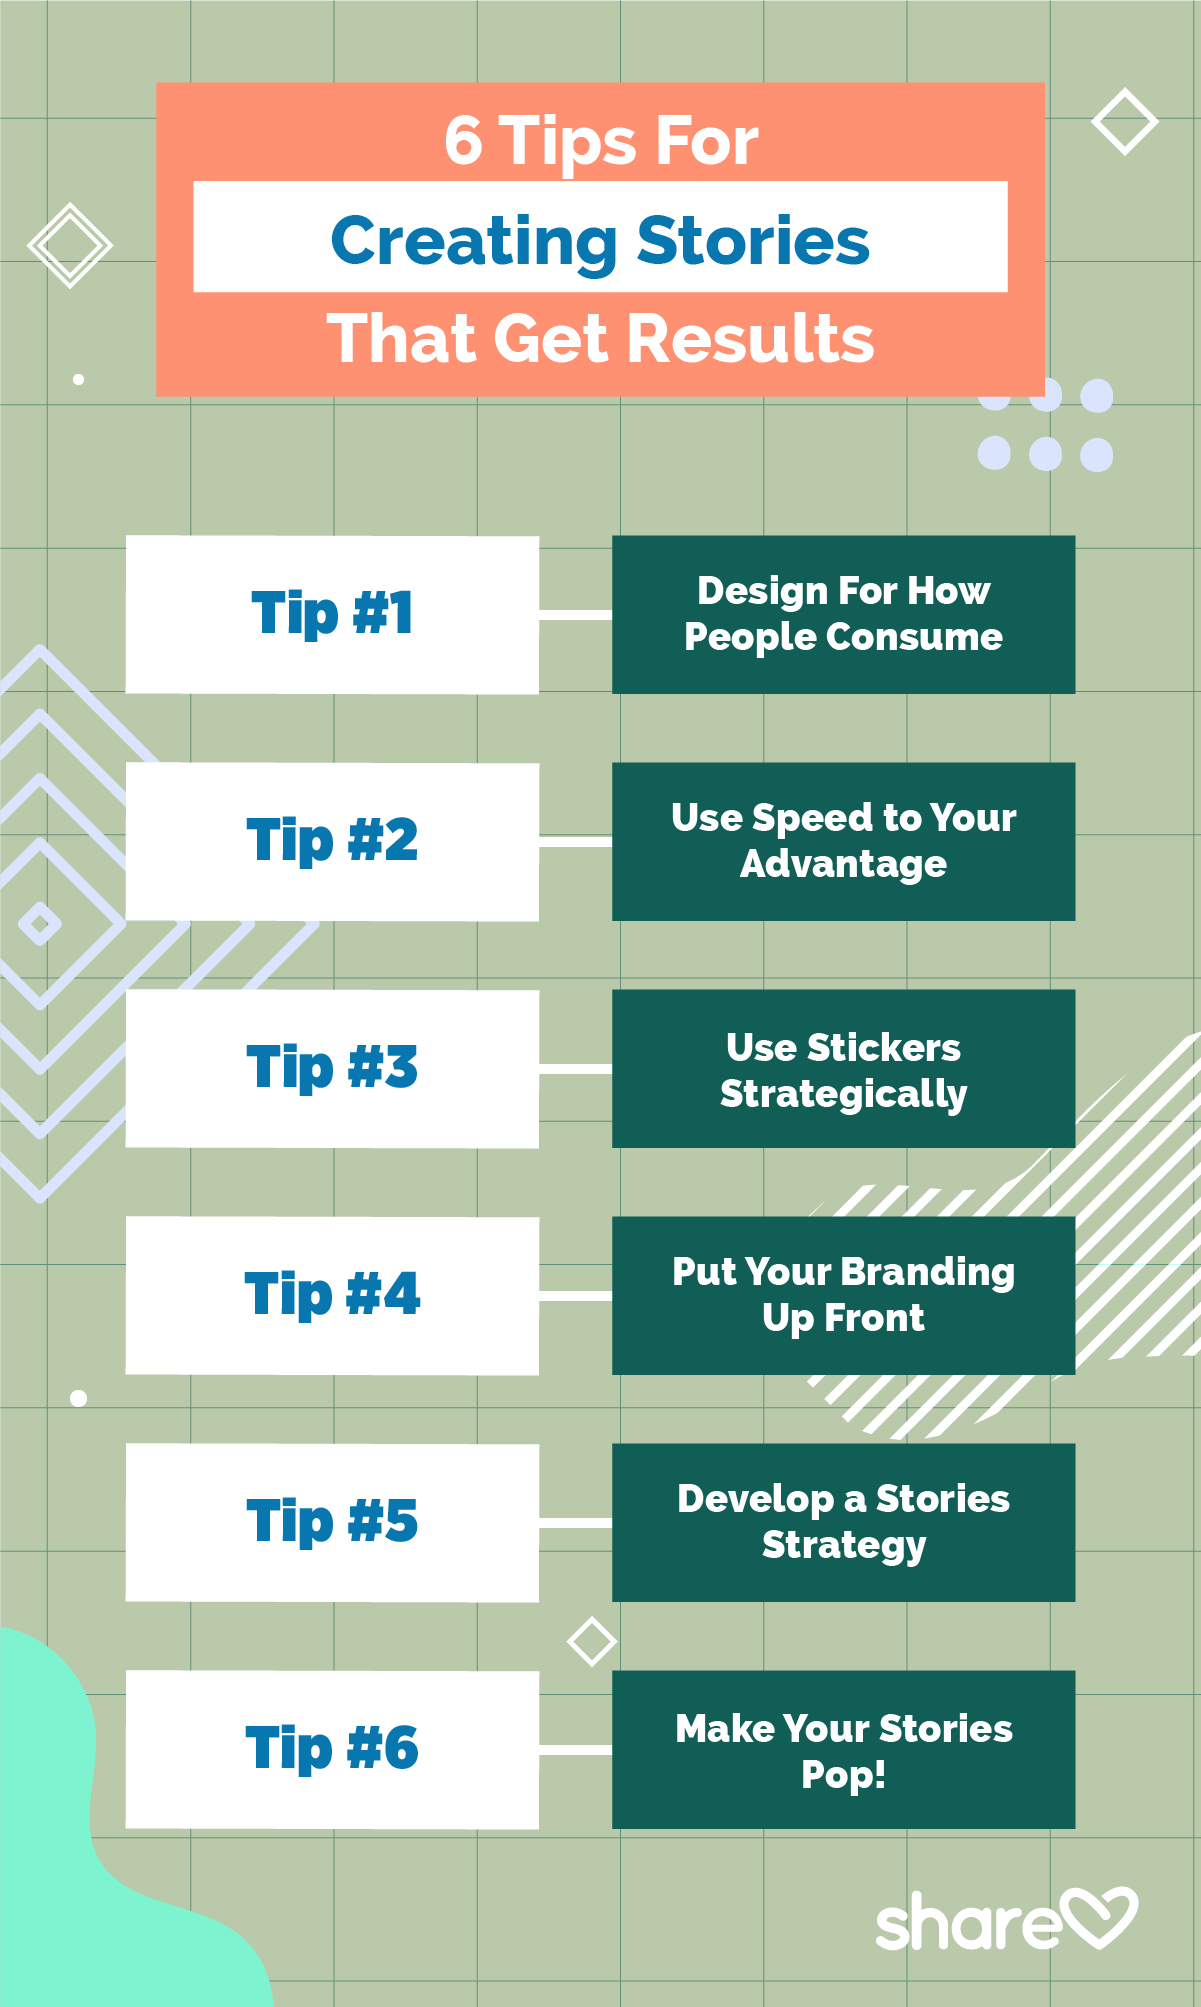 6 Tips For Creating Stories That Get Results